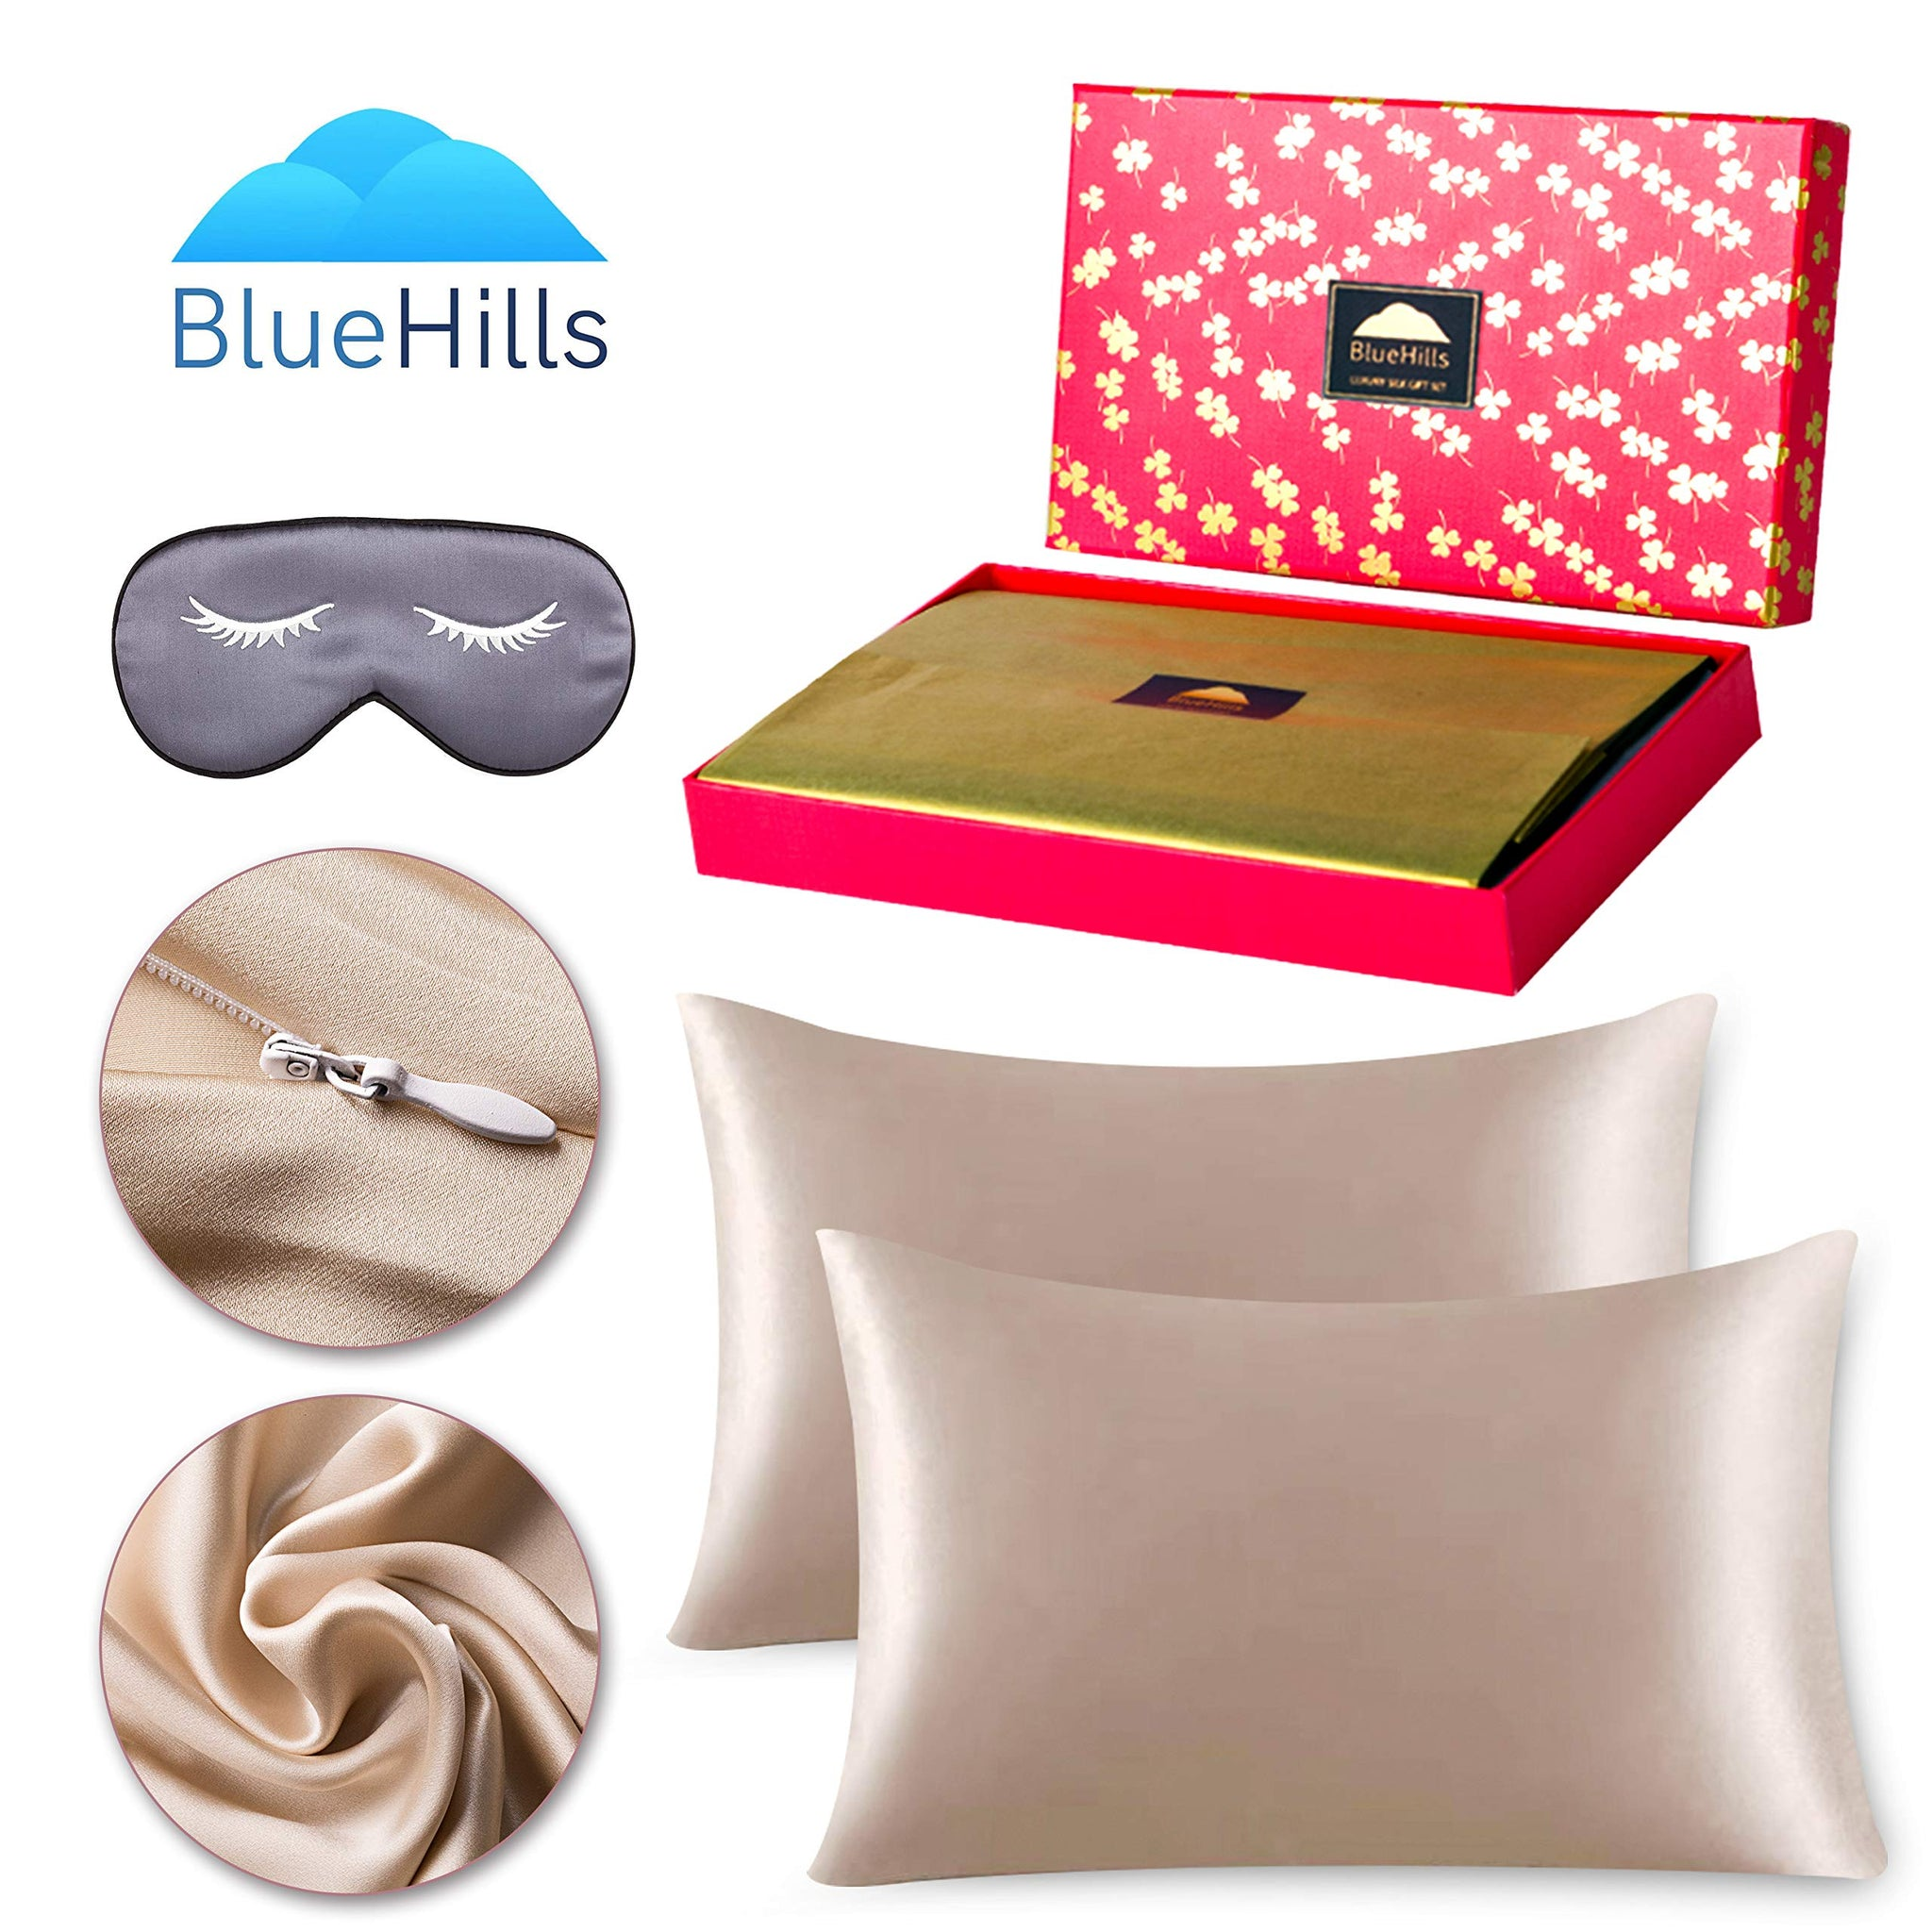 BlueHills 19 MommePure Mulberry Silk Pillowcase 3 piece Gift set -King - Light Bronze